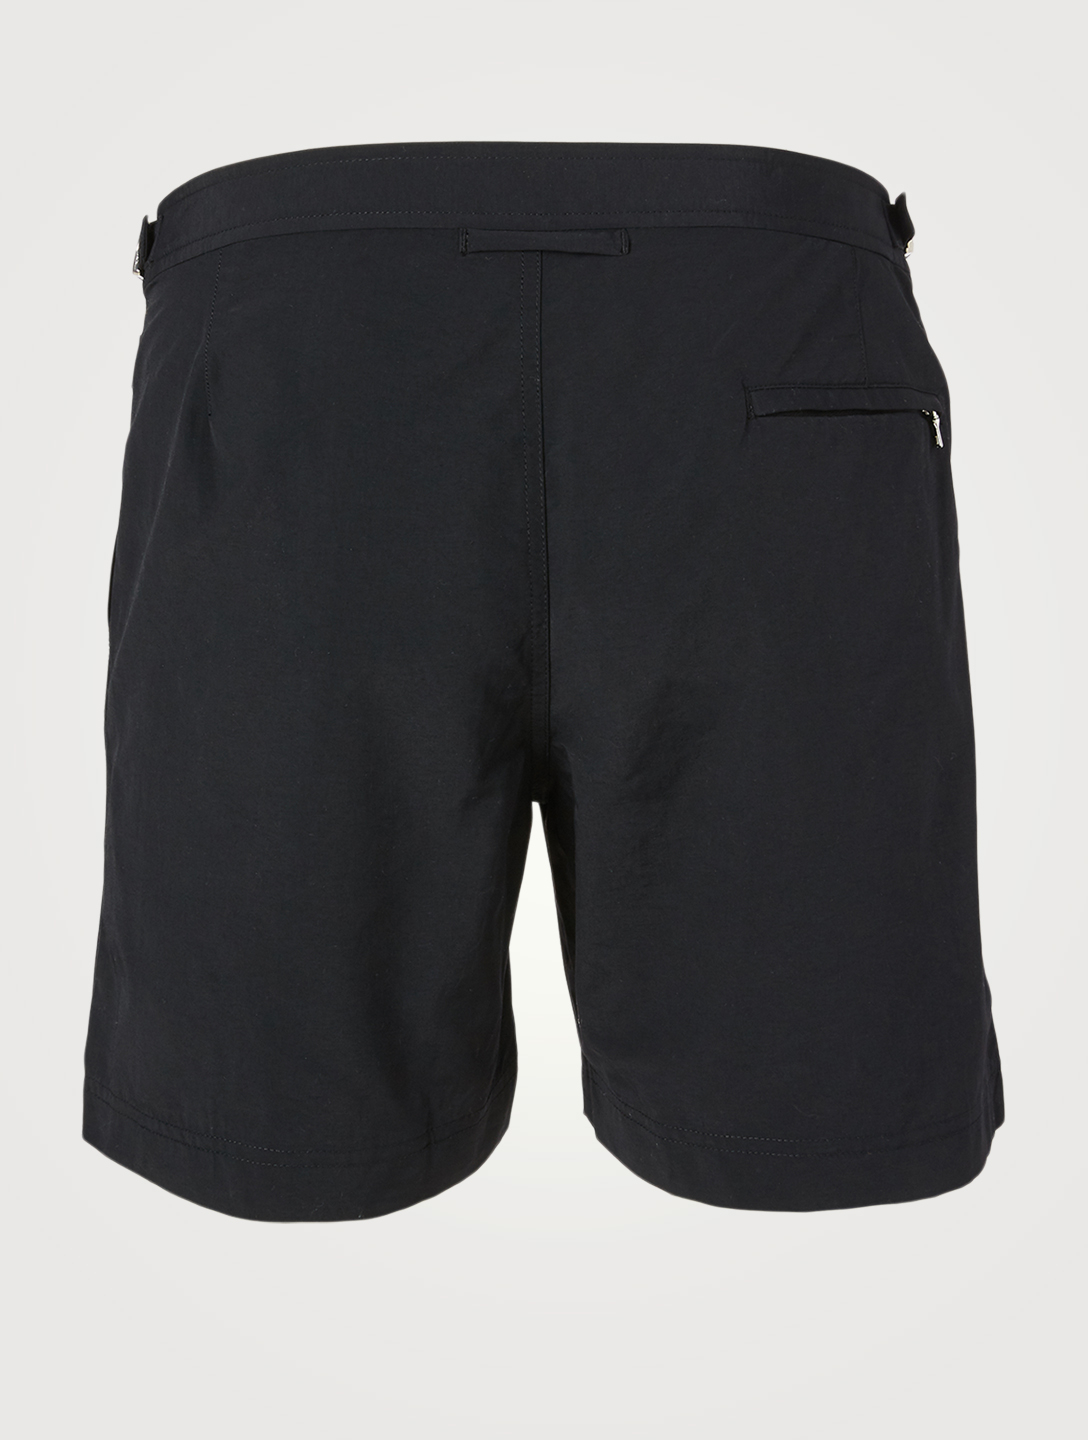 ORLEBAR BROWN Short de bain mi-long Bulldog Hommes Noir